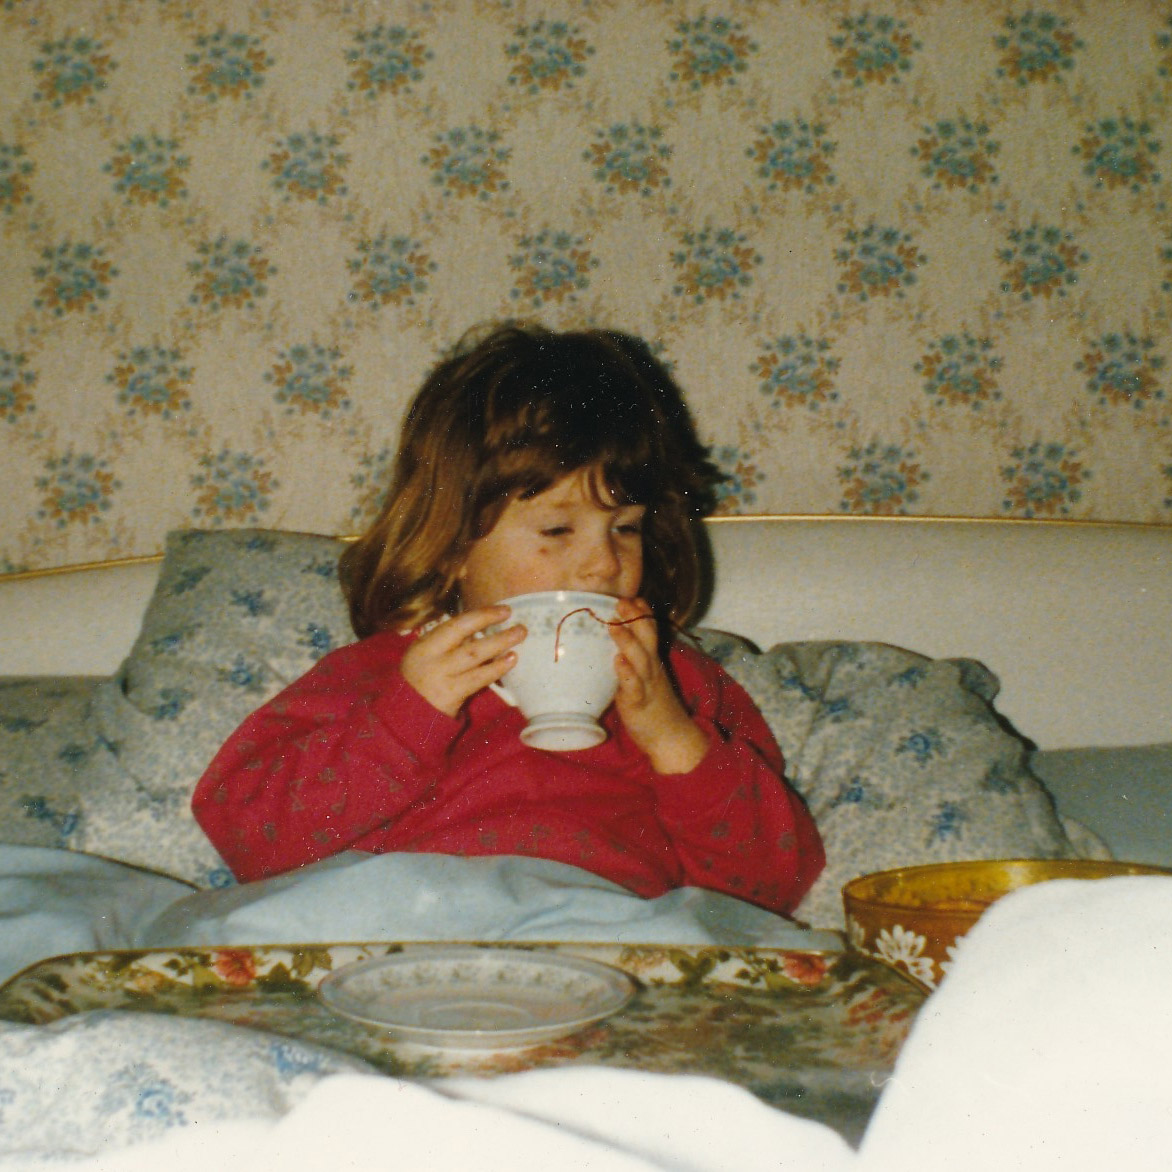 Jen tea in bed square.jpg